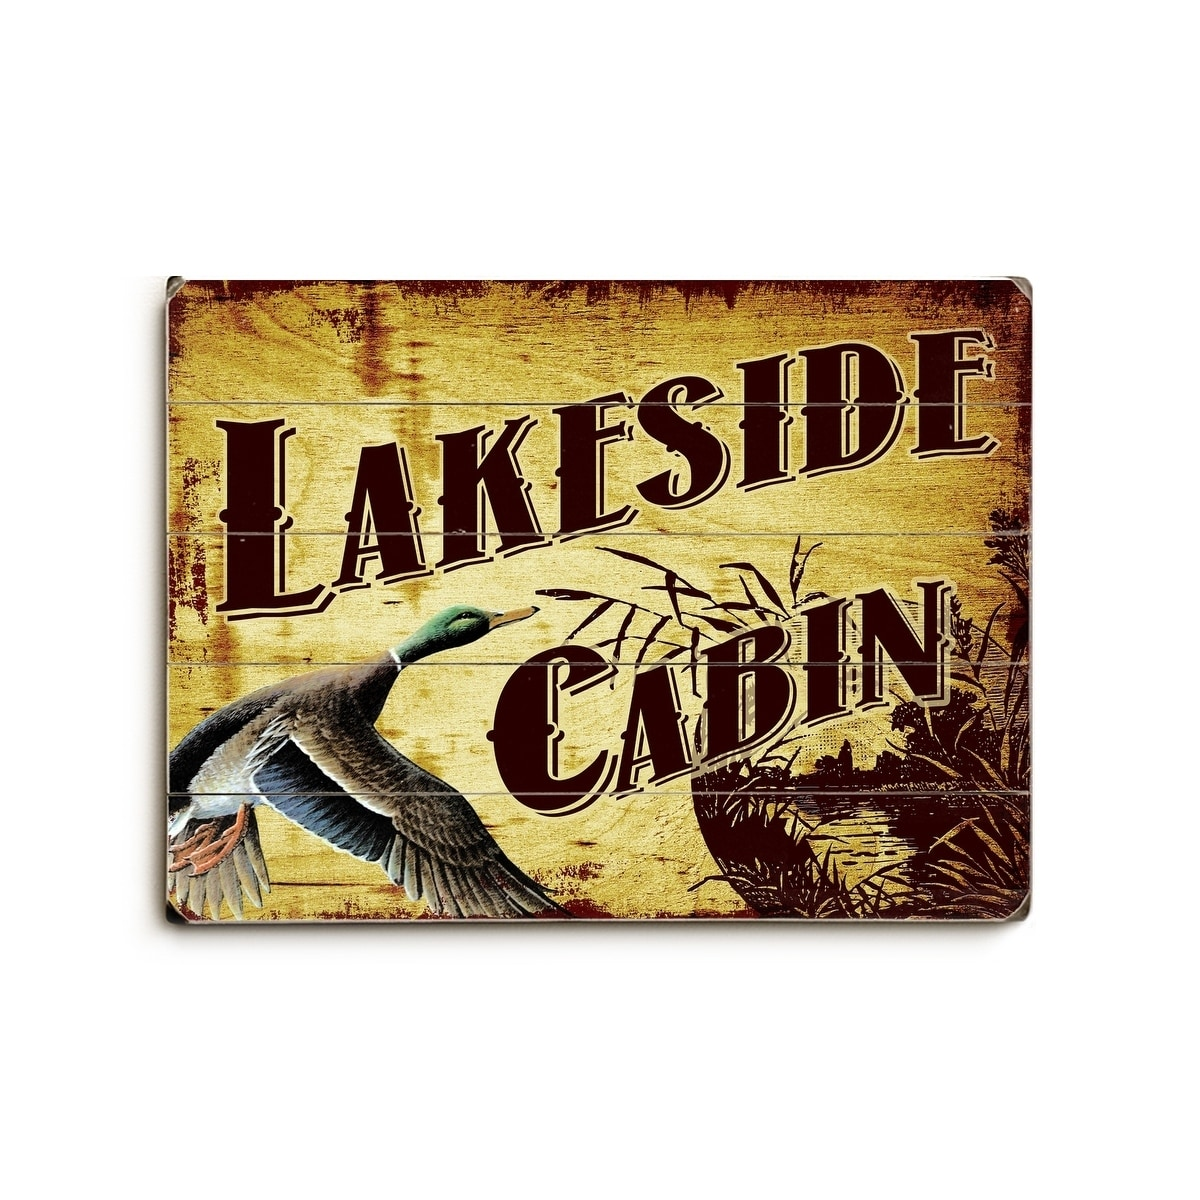 Lakeside Cabin - Planked Wood Wall Decor by Artehouse - Free ...